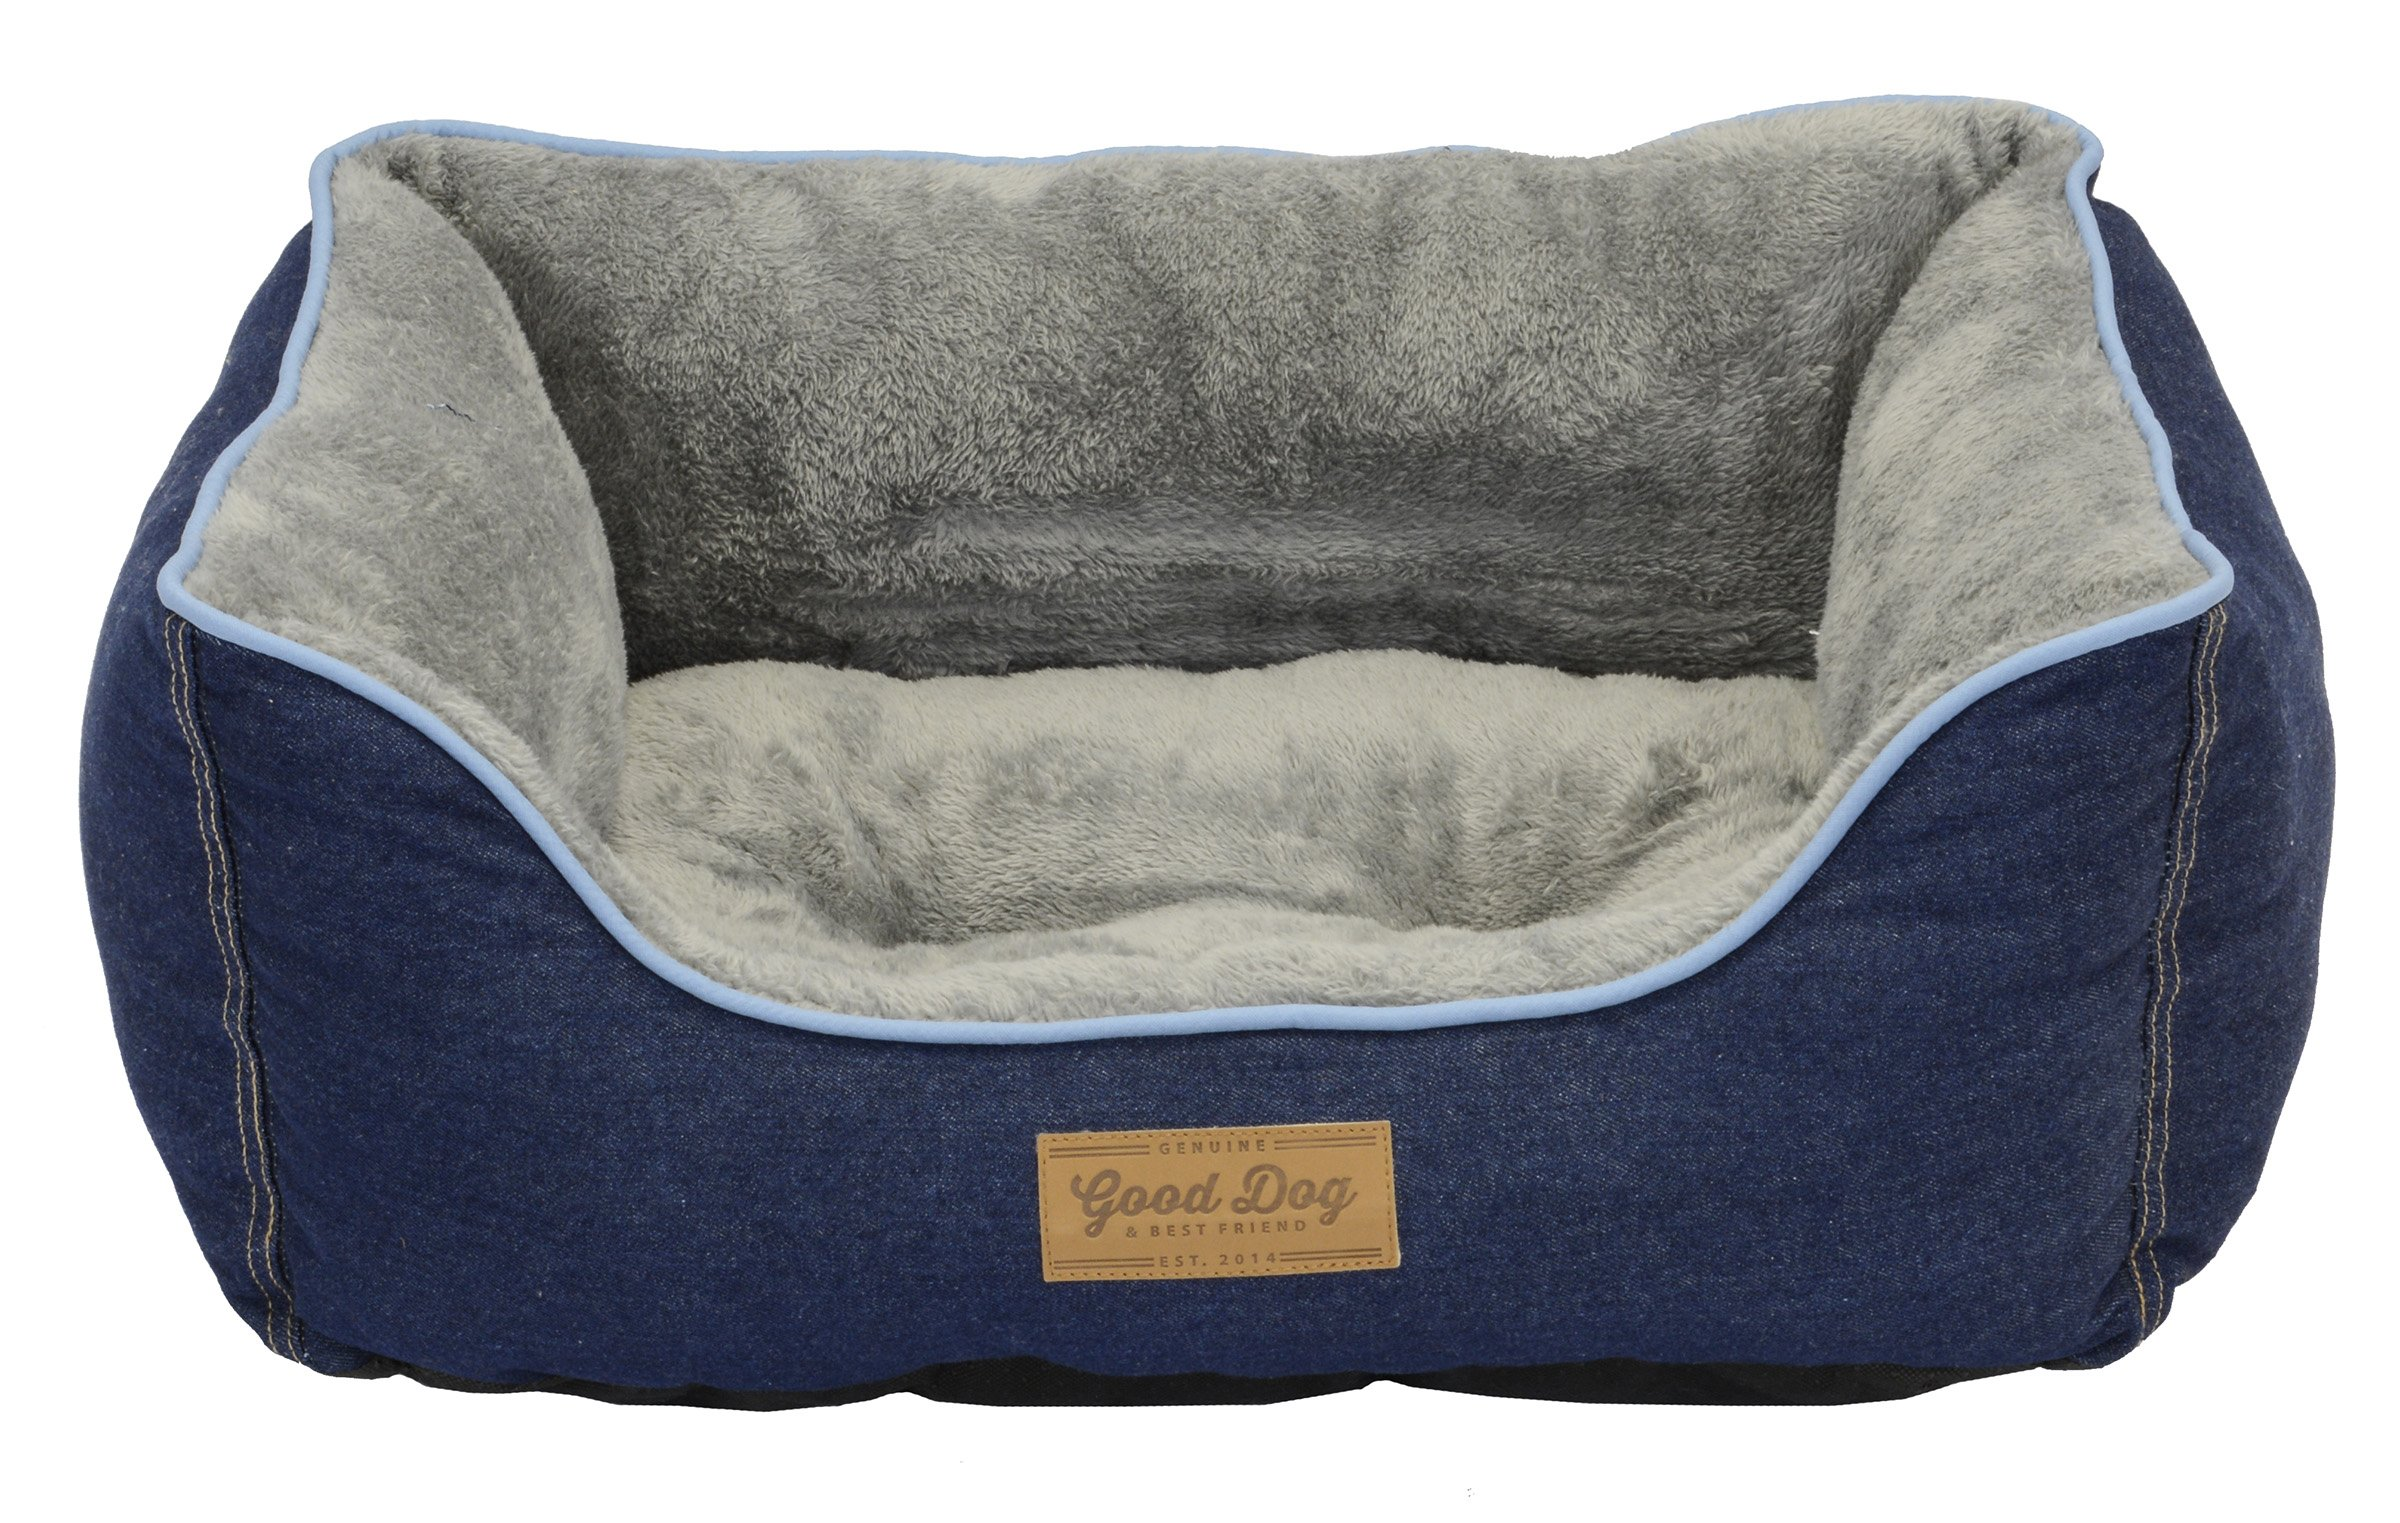 Dallas Manufacturing Co. Dog Bed with Bolstered Sides by Good Dog & Best Friend | Machine Washable Bed in Denim with Non Skid Bottom